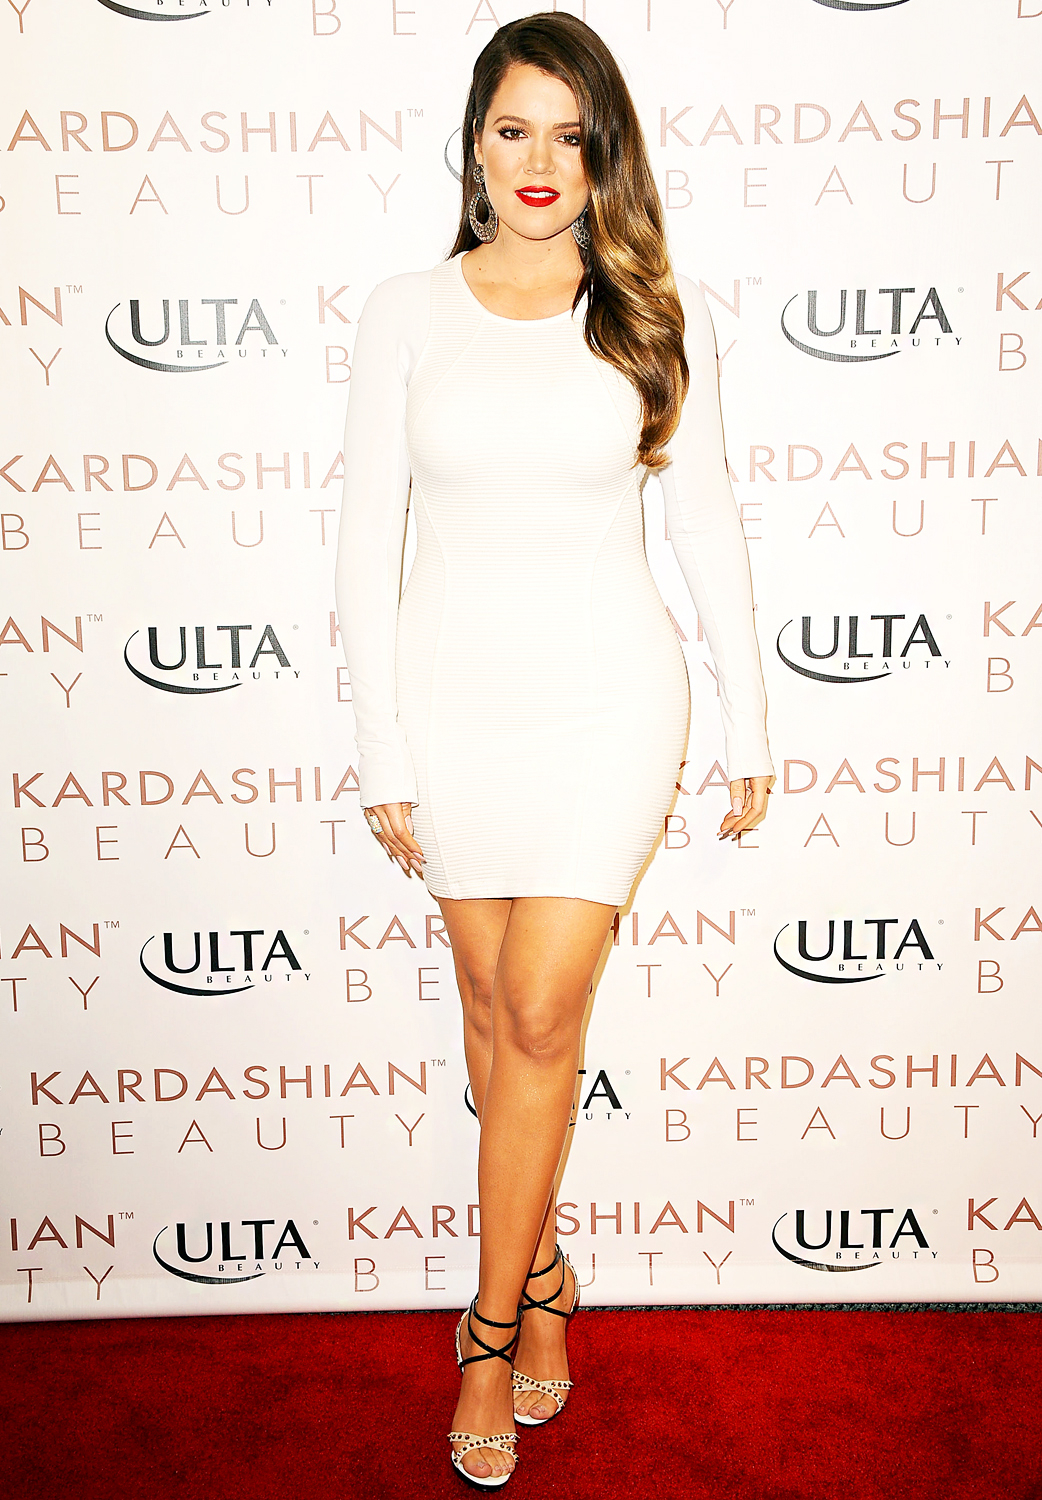 Flaunting her toned legs in a tight white dress in June 9, 2013, the star shined on the red carpet.